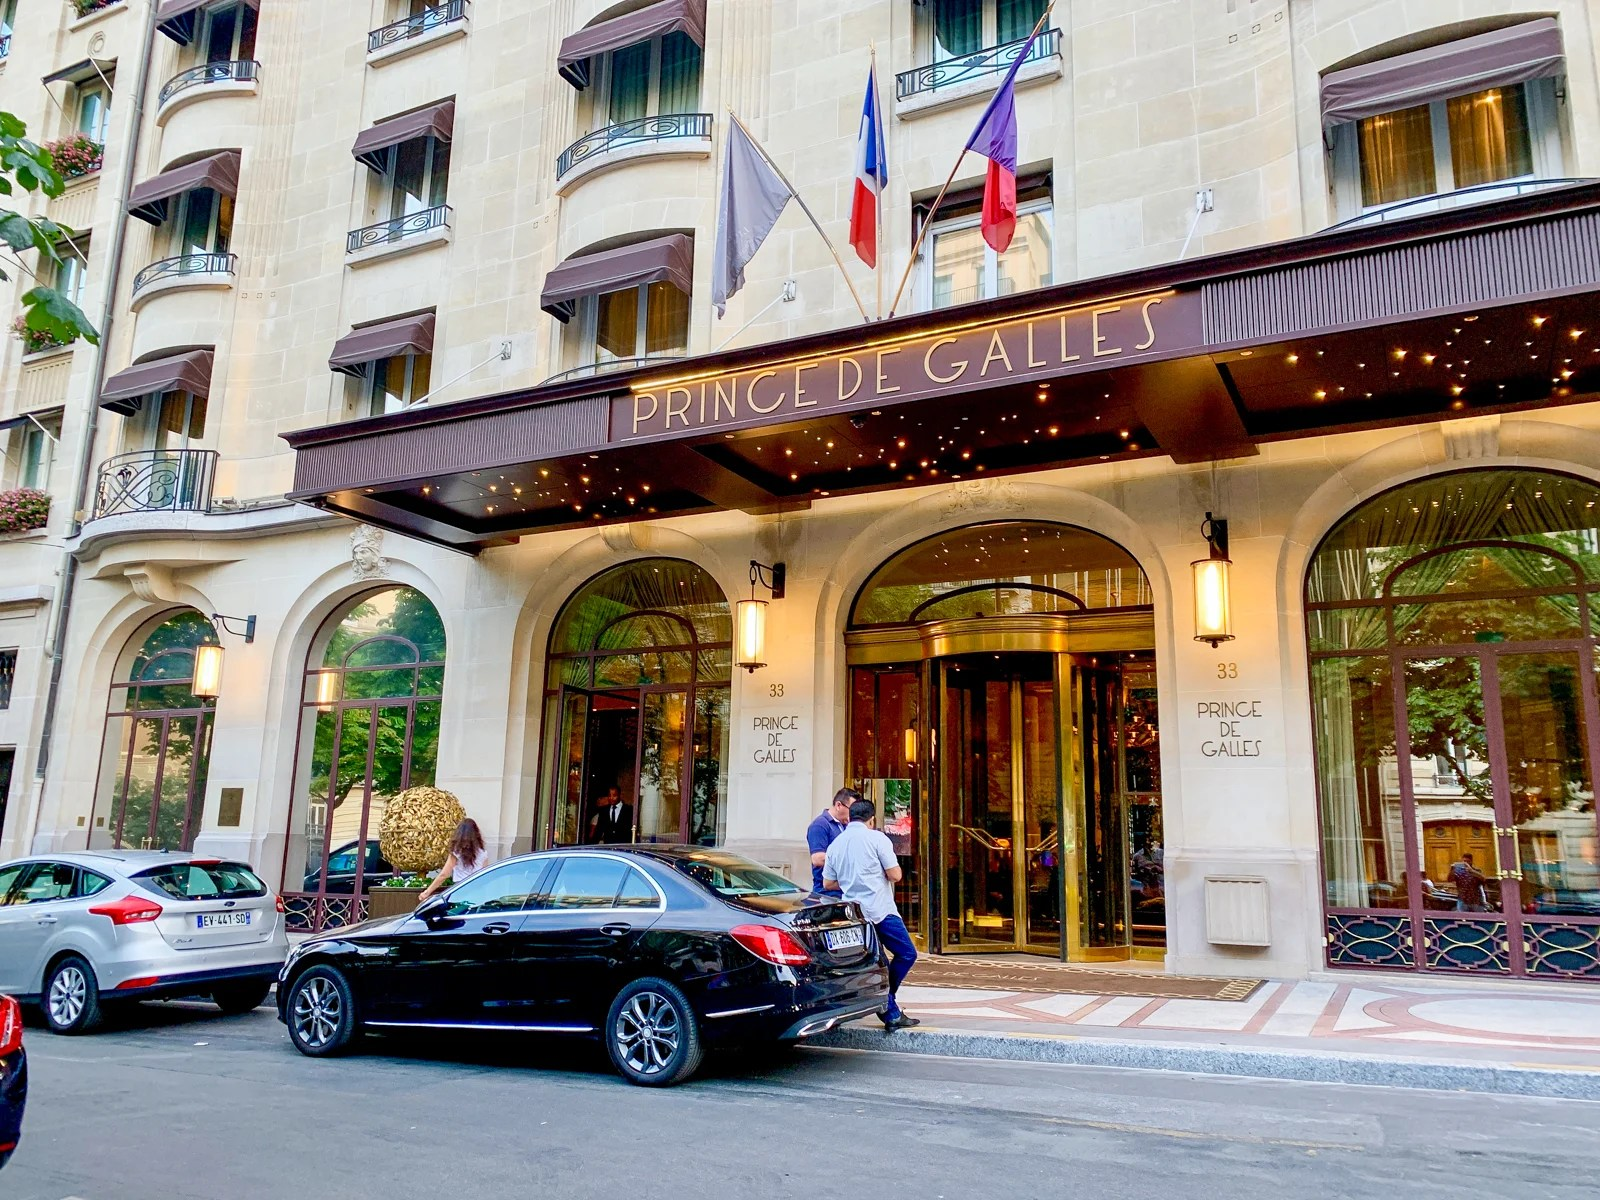 Art deco decadence: A review of Prince de Galles, a Luxury Collection Hotel in Paris